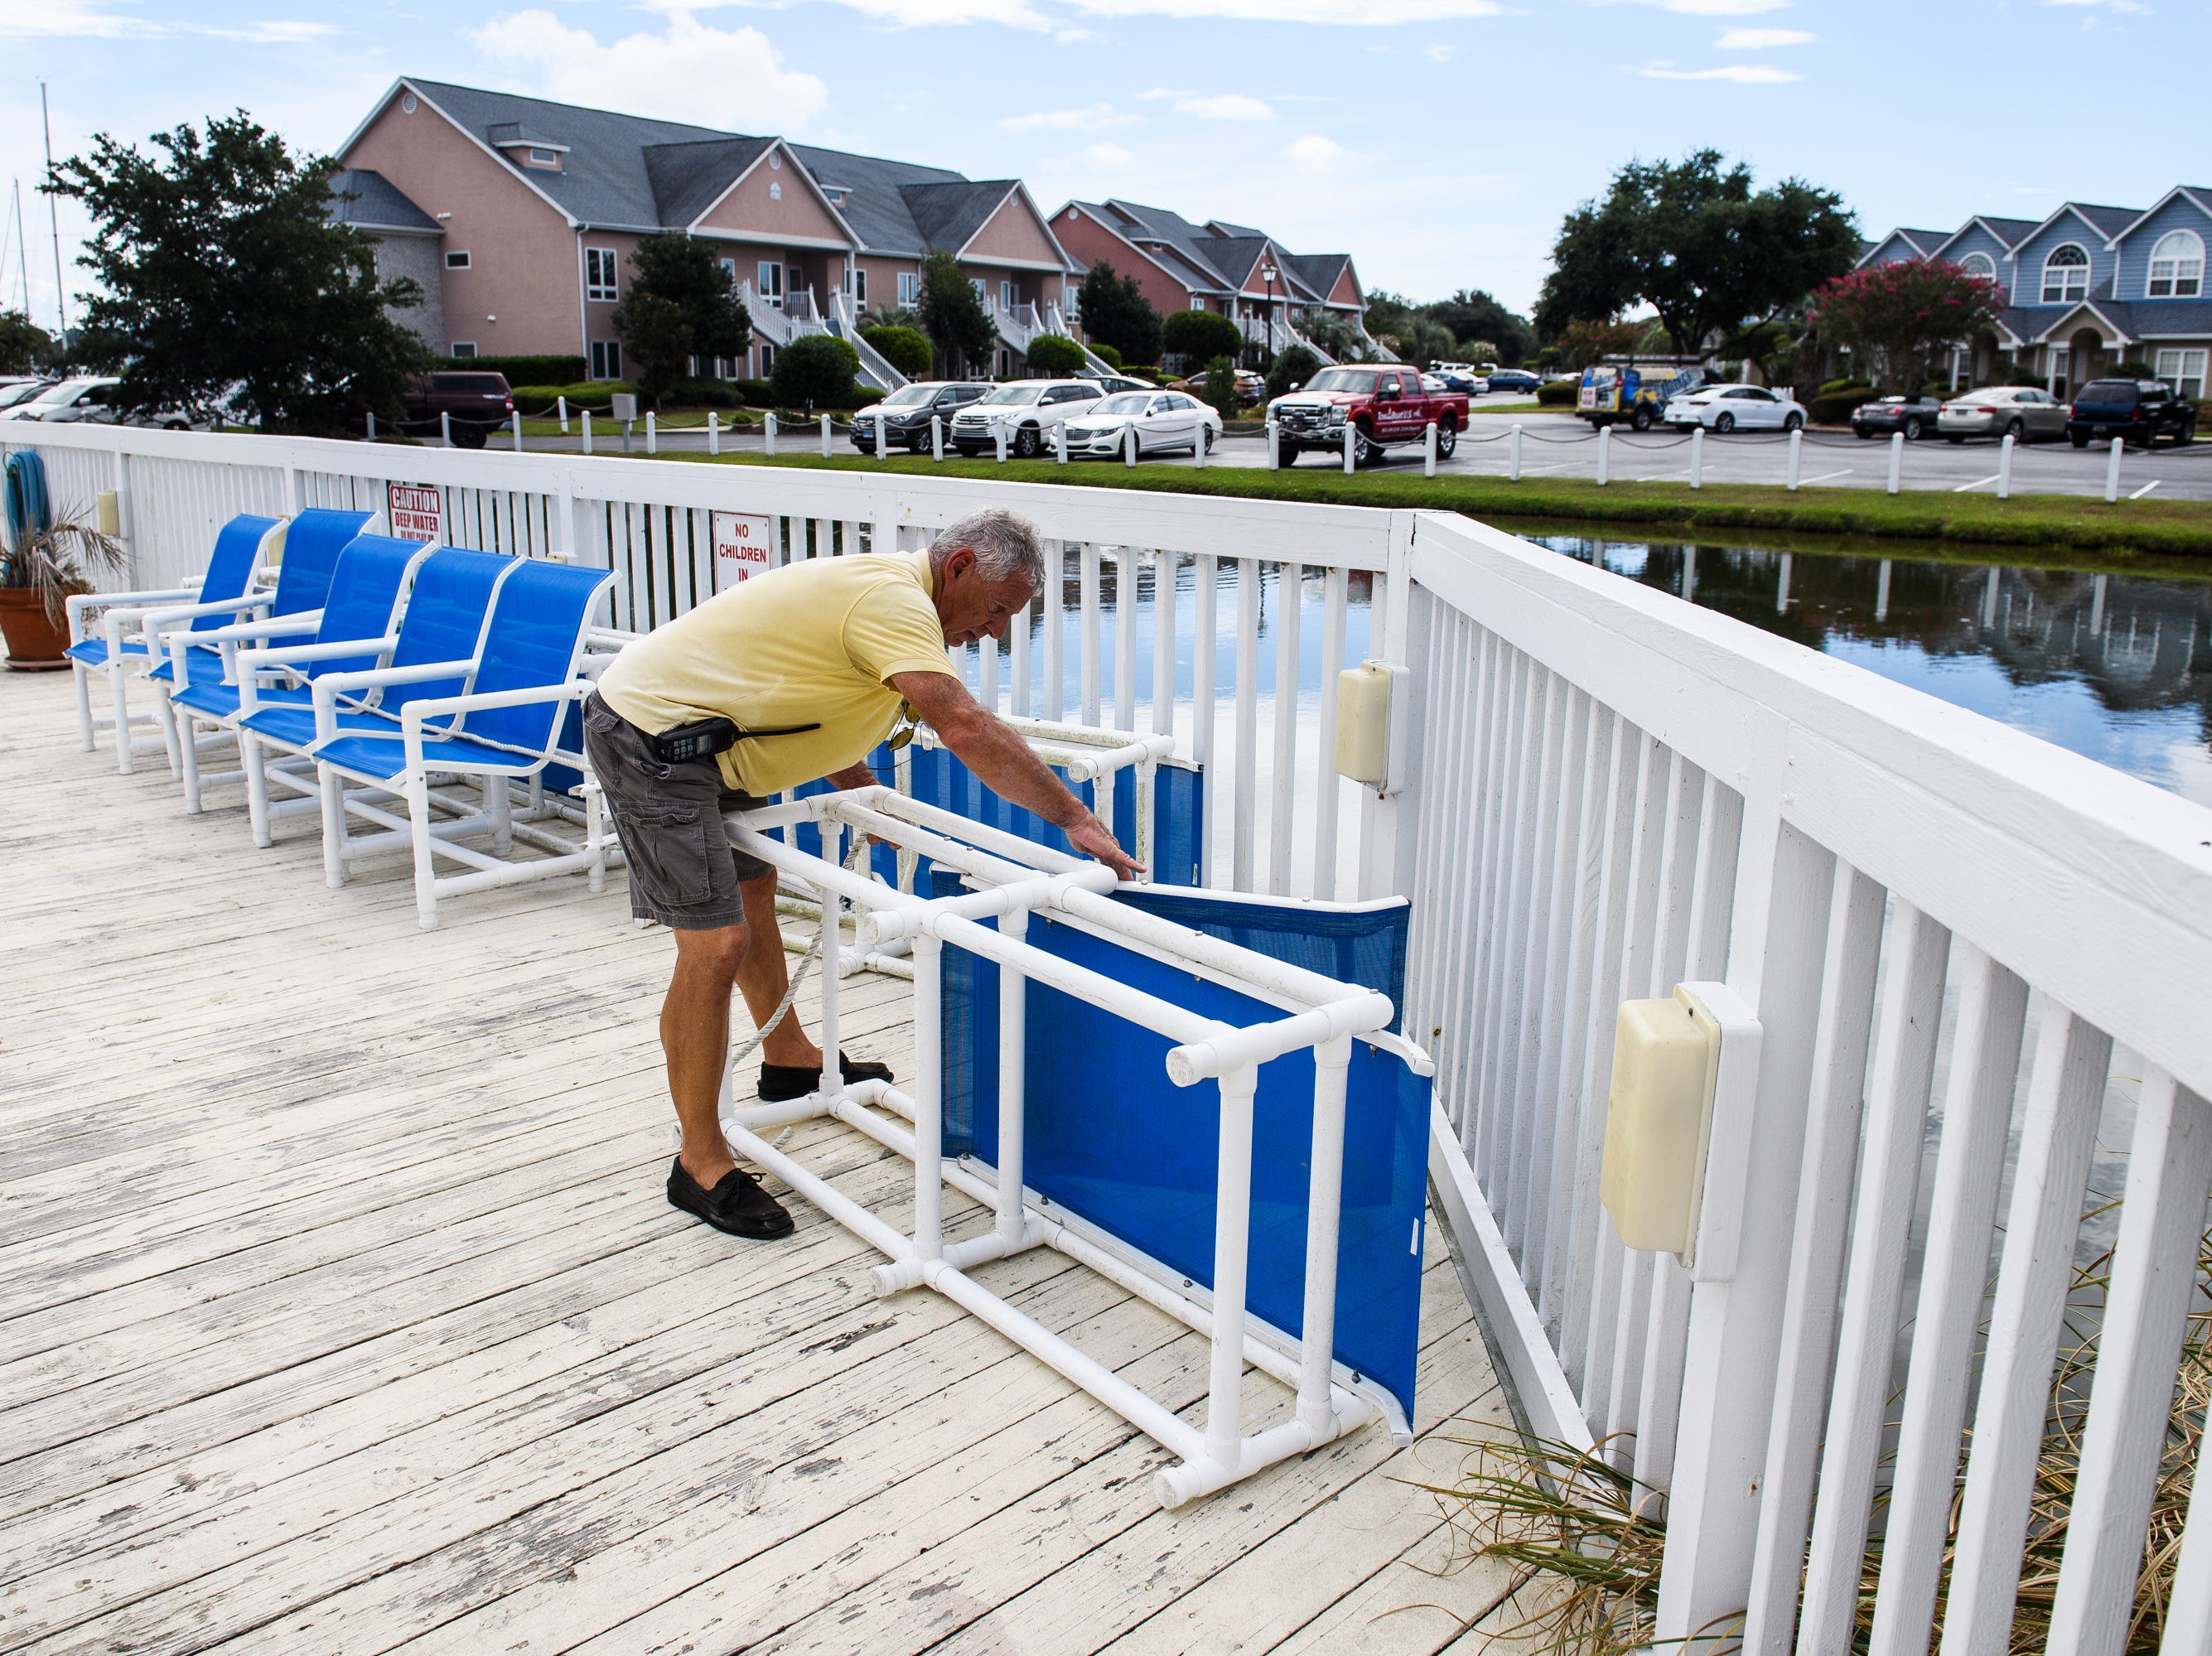 Sep 12, 2018; North Myrtle Beach, SC, USA; George Rubis, assistant dock manager at the Lightkeepers Marina, ties up sunbathing chairs at the clubhouse anticipation of Hurricane Florence.